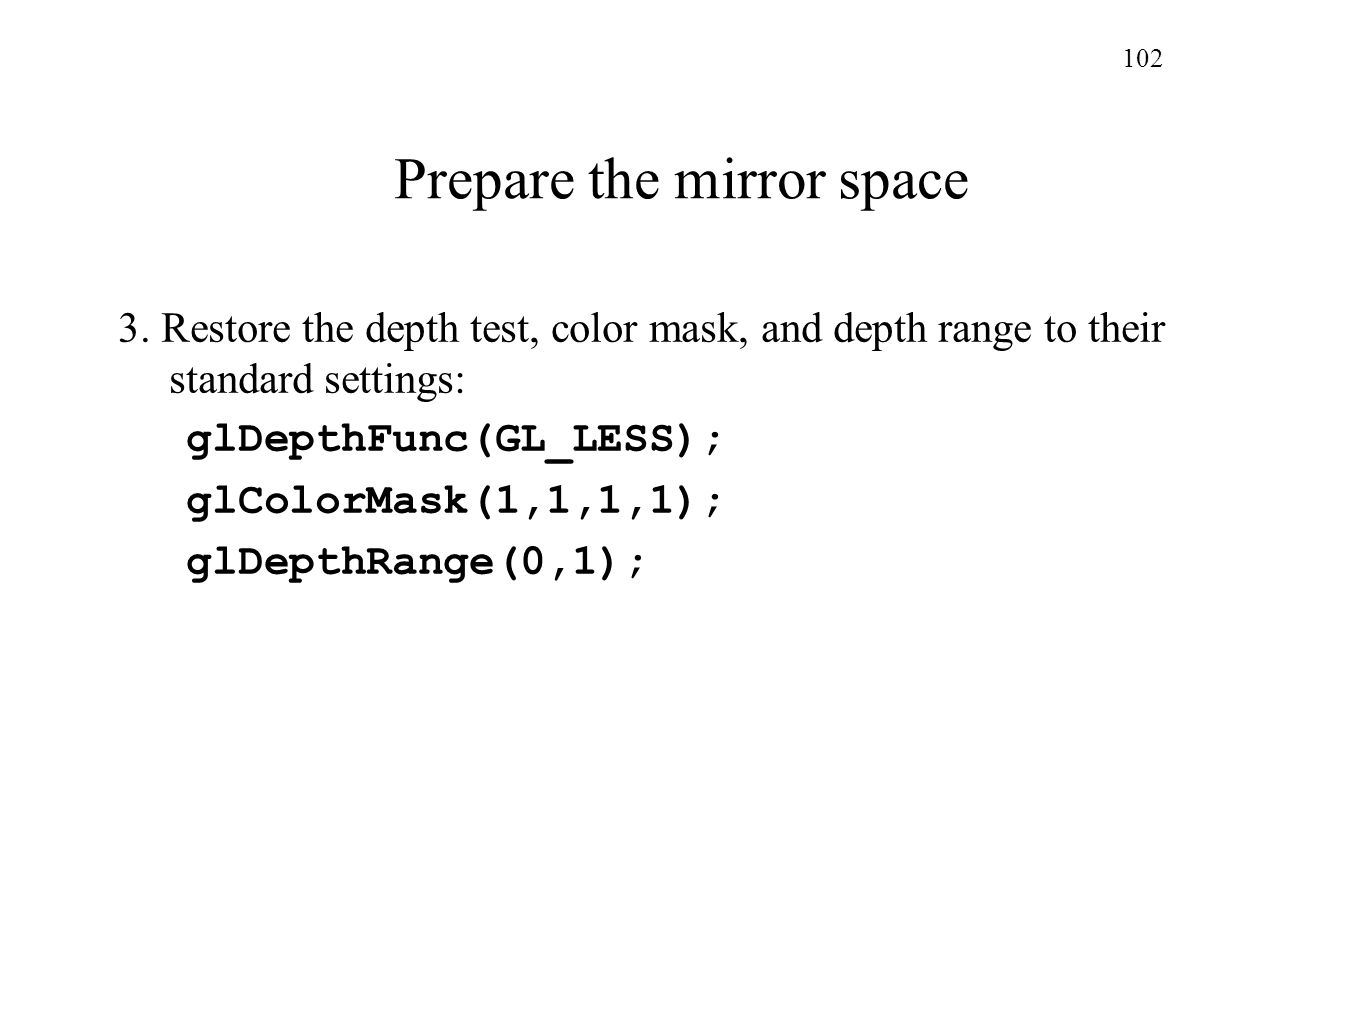 Prepare the mirror space